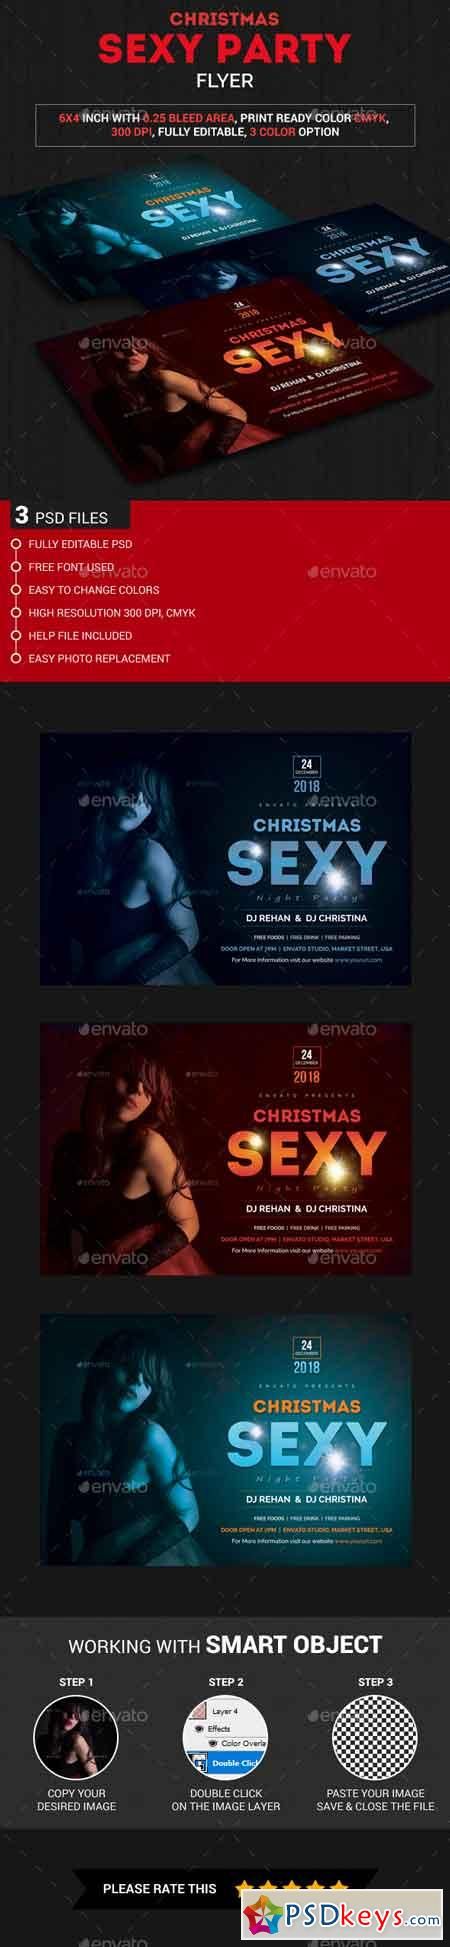 Christmas Sexy Party Flyer 22876970